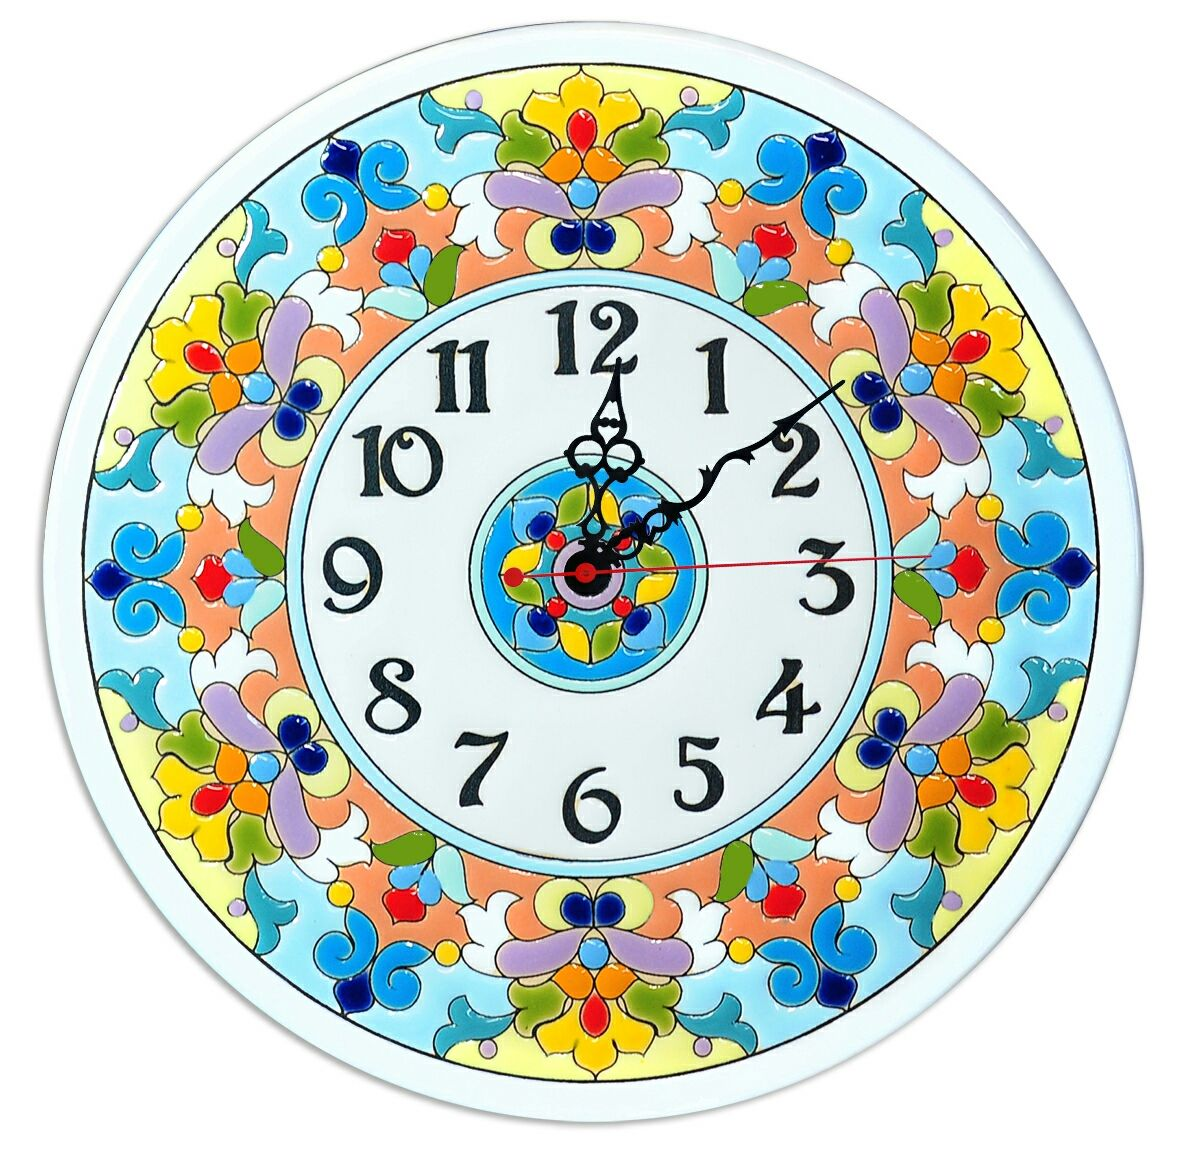 Wall Clock Decorativeceramicround Shop Online On Livemaster With